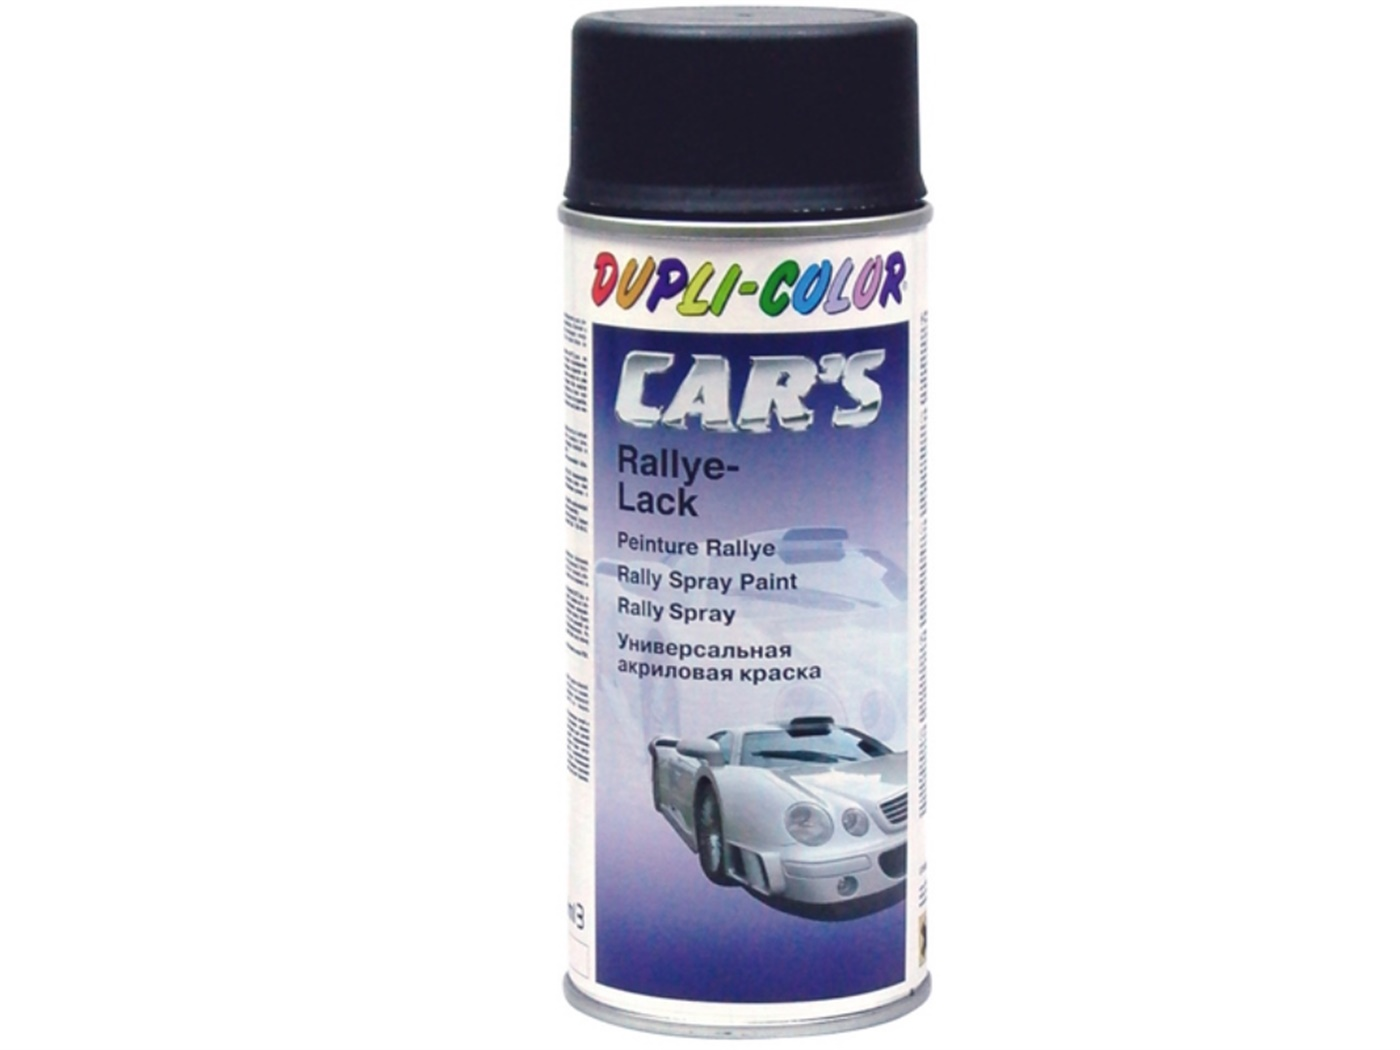 Lak  bijeli  sjajni   4 0 0  ml   motip  cars  spray   3 8 5 8 9 6